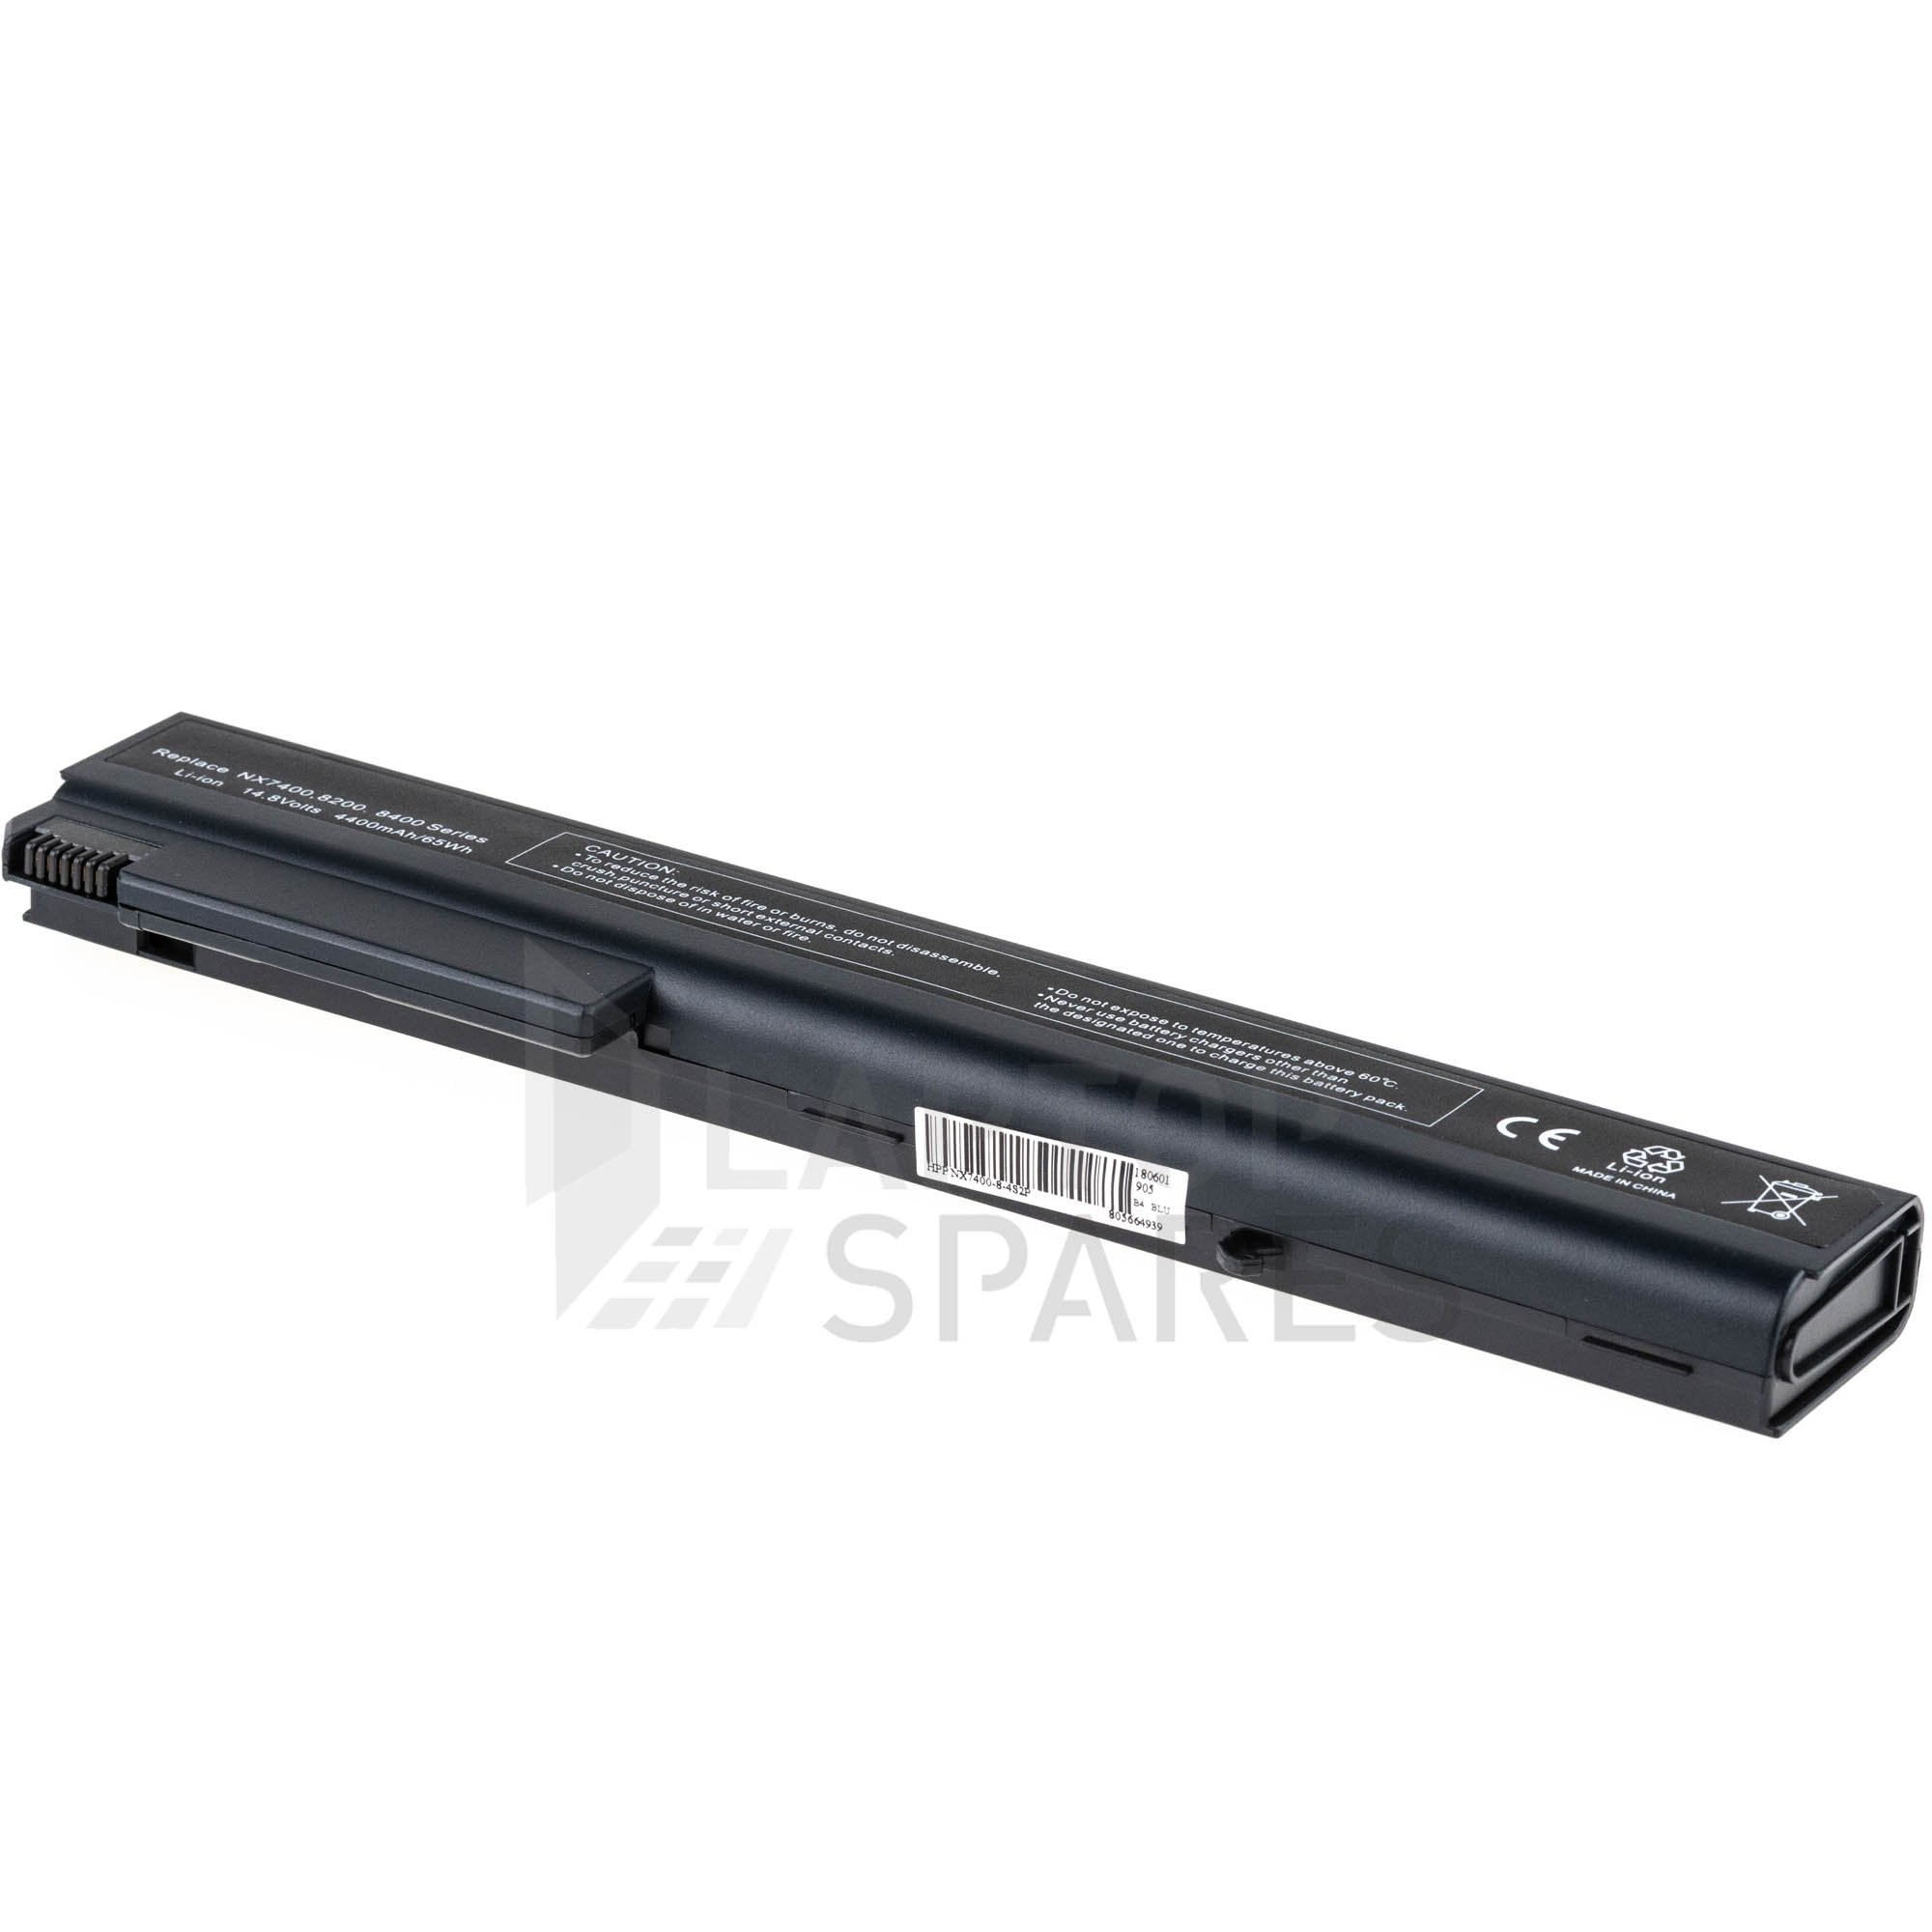 HP Business Notebook 8710P 4400mAh 6 Cell Battery